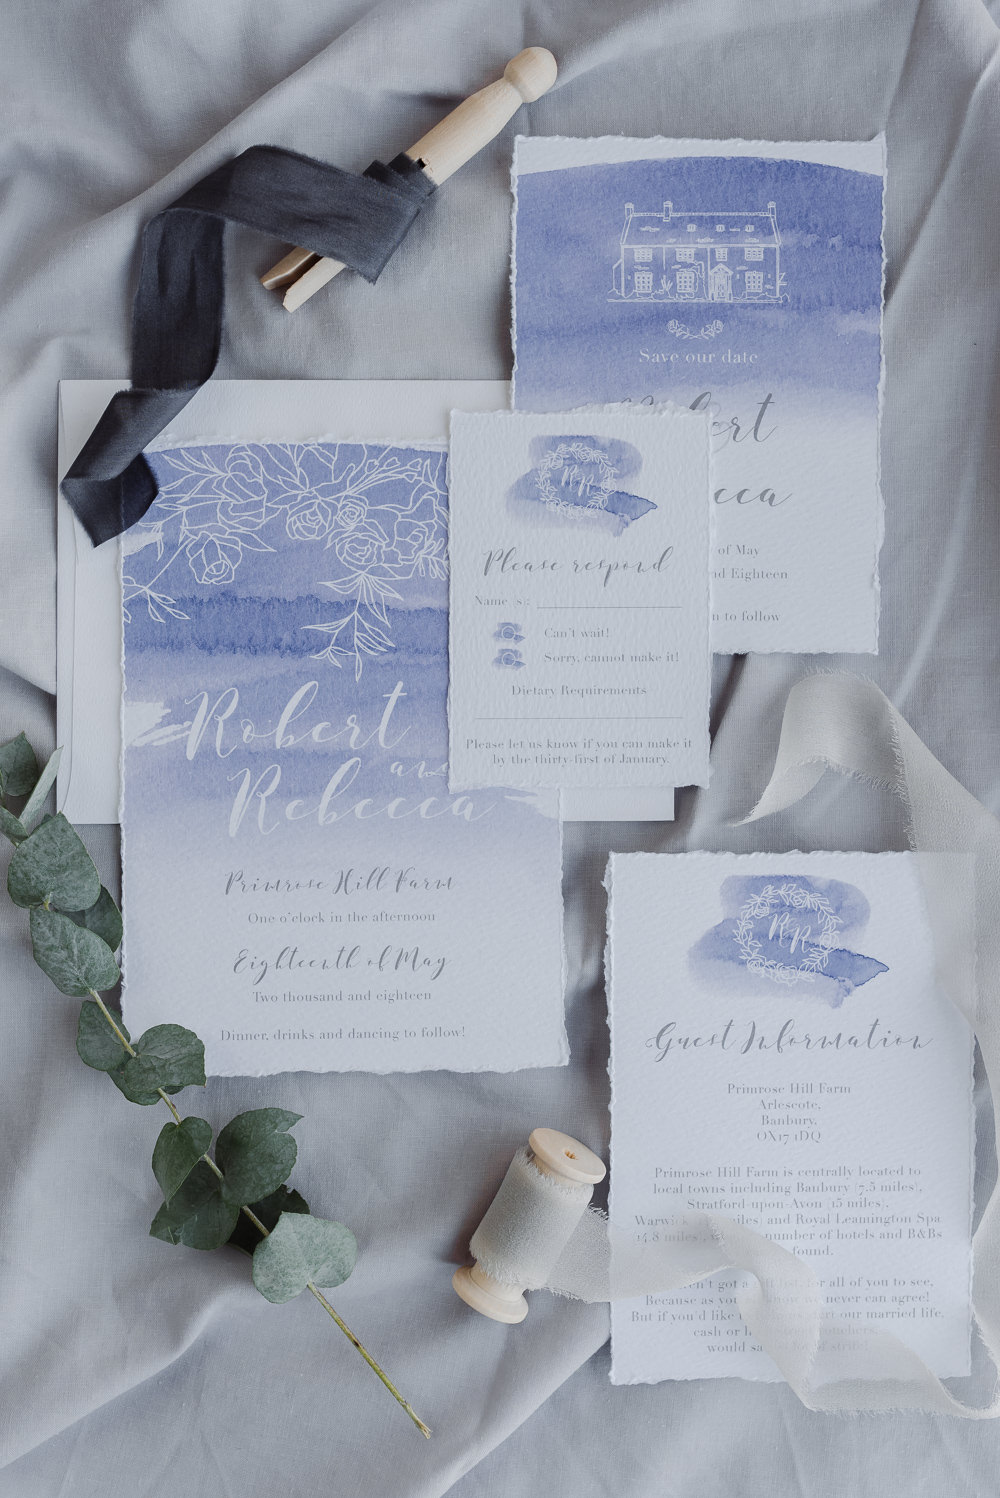 Watercolour Purple Lilac Stationery Invitation Invite Suite Grey Violet Wedding Ideas Chloe Ely Photography